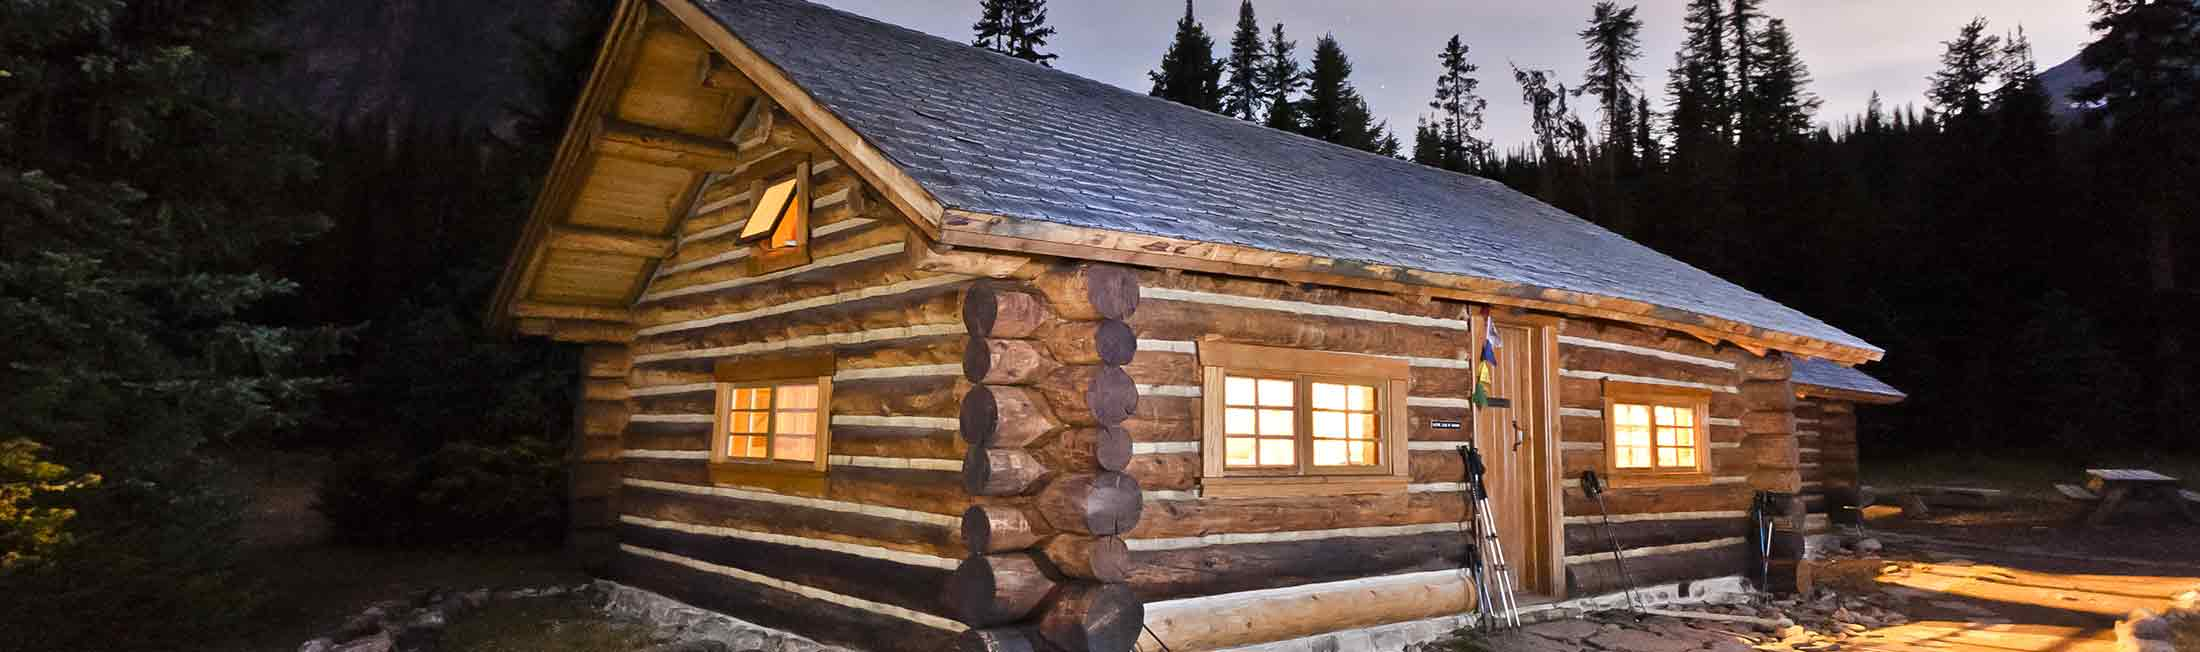 cabins montana red vacation lodge mt for rentals rent cabin